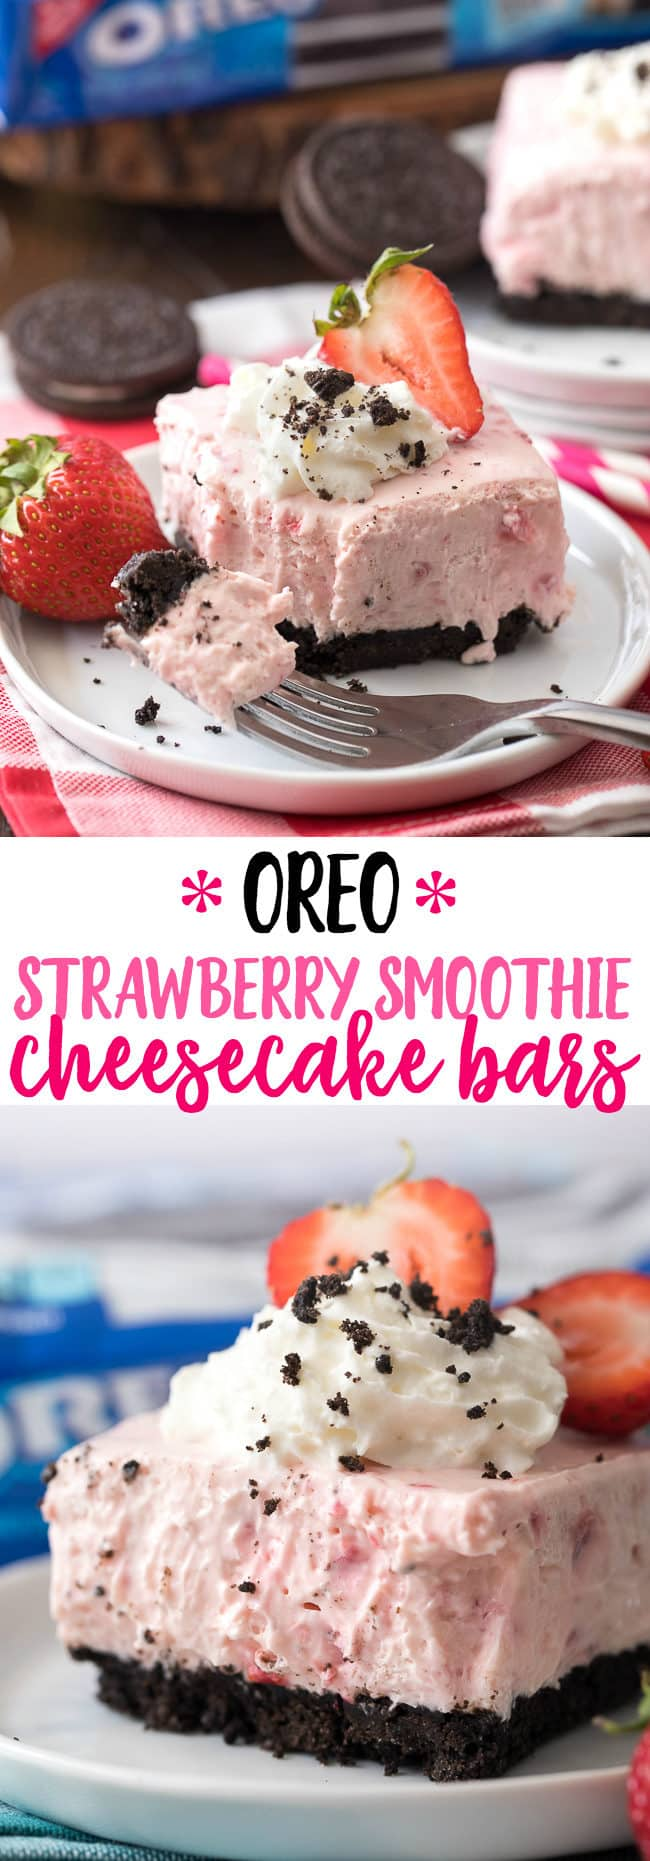 hese OREO Strawberry Smoothie Cheesecake Bars are easy, creamy and delicious!